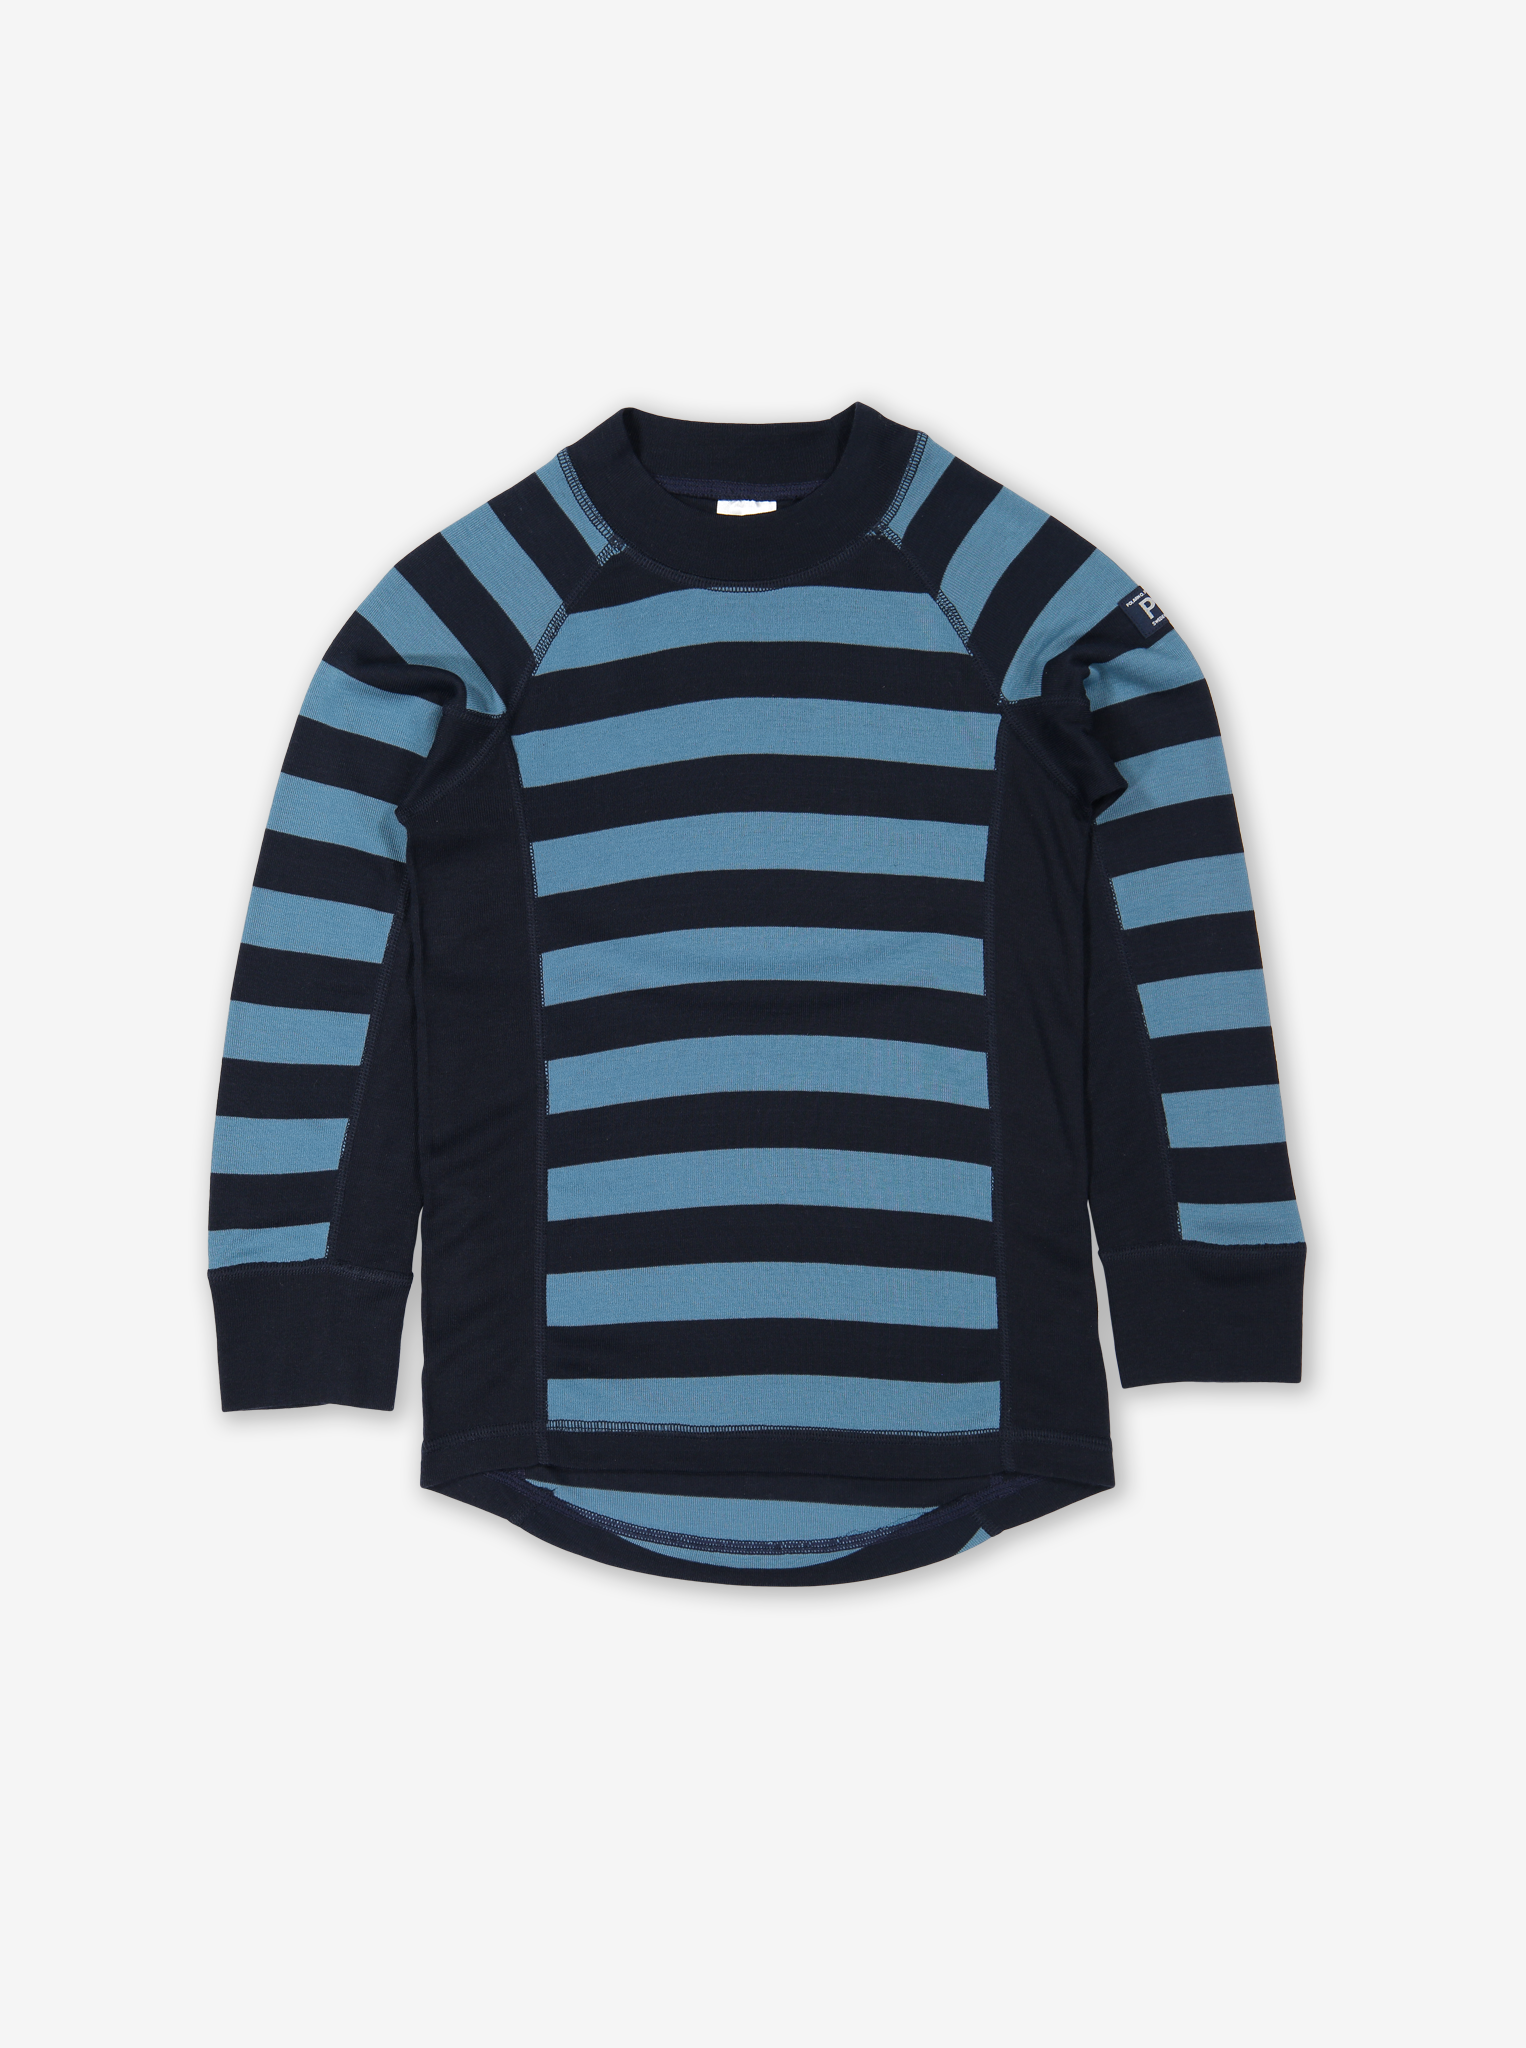 Kids Striped Thermal Top